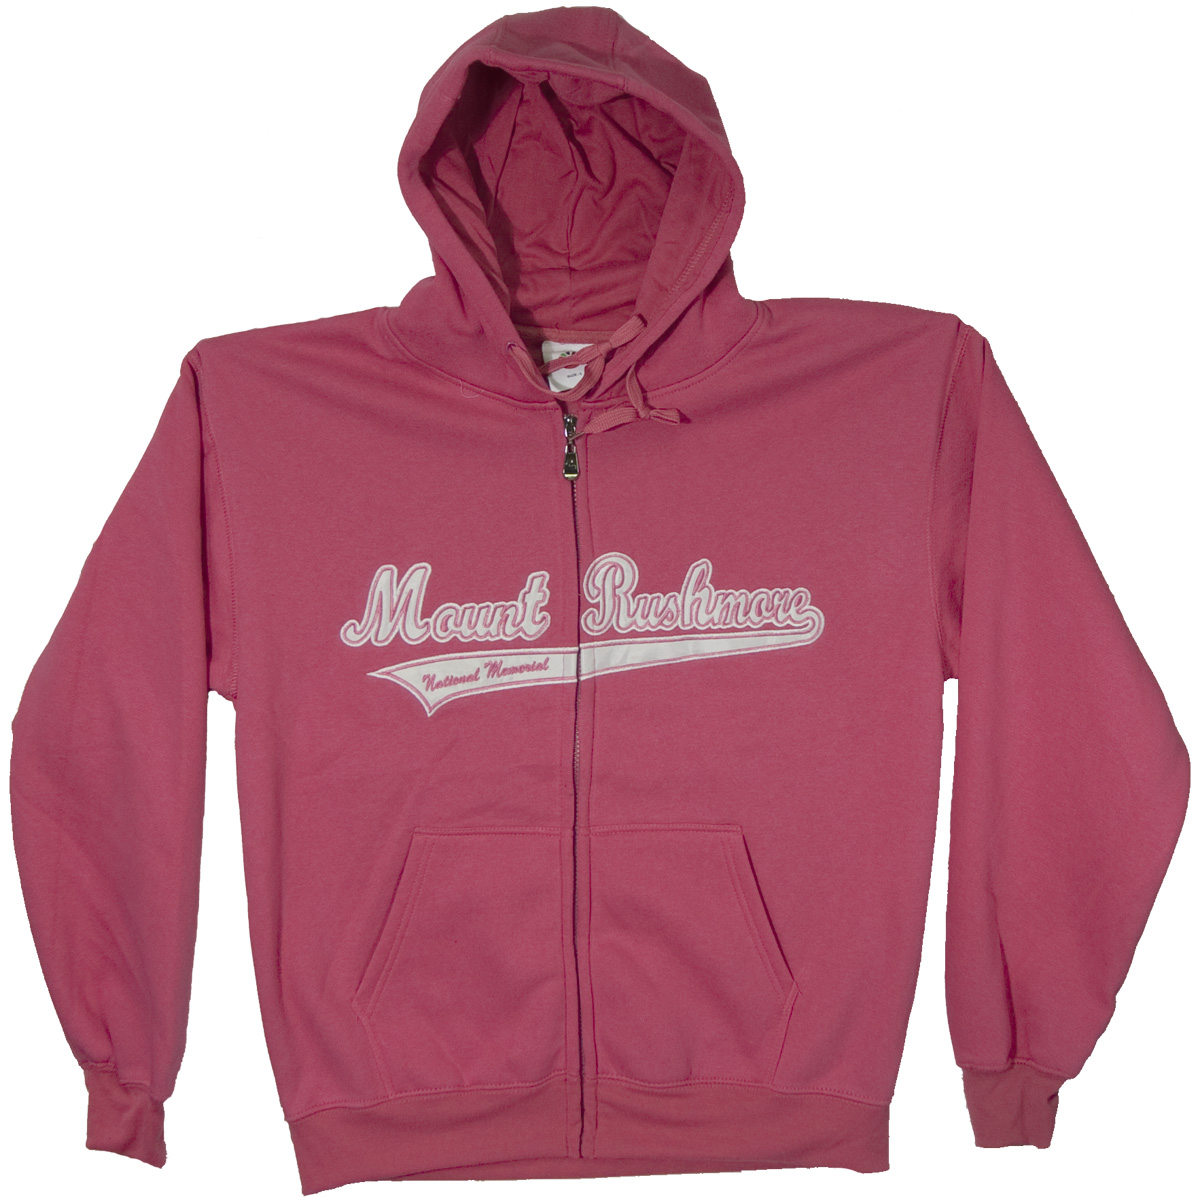 (L) MOUNT RUSHMORE HOT PINK APPLIQUE ZIP HOODY